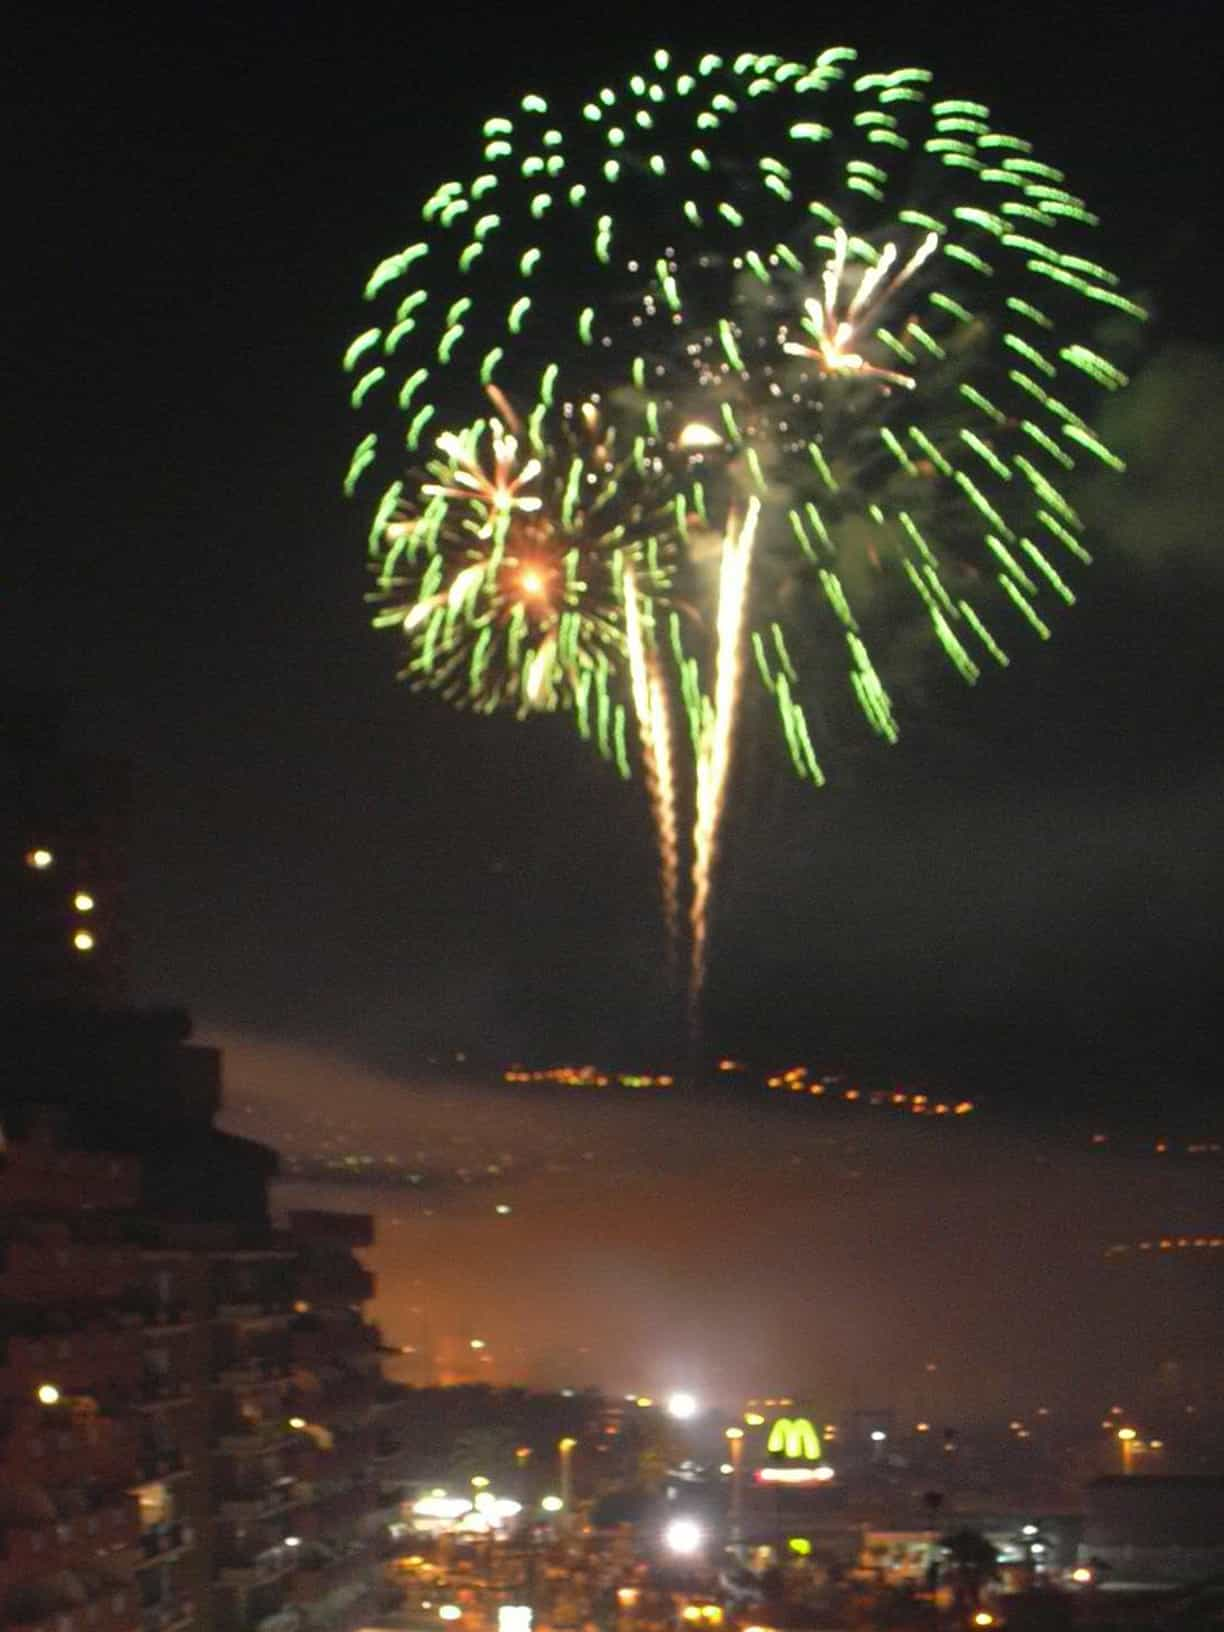 Fuengirola Fireworks - January 10, 2012